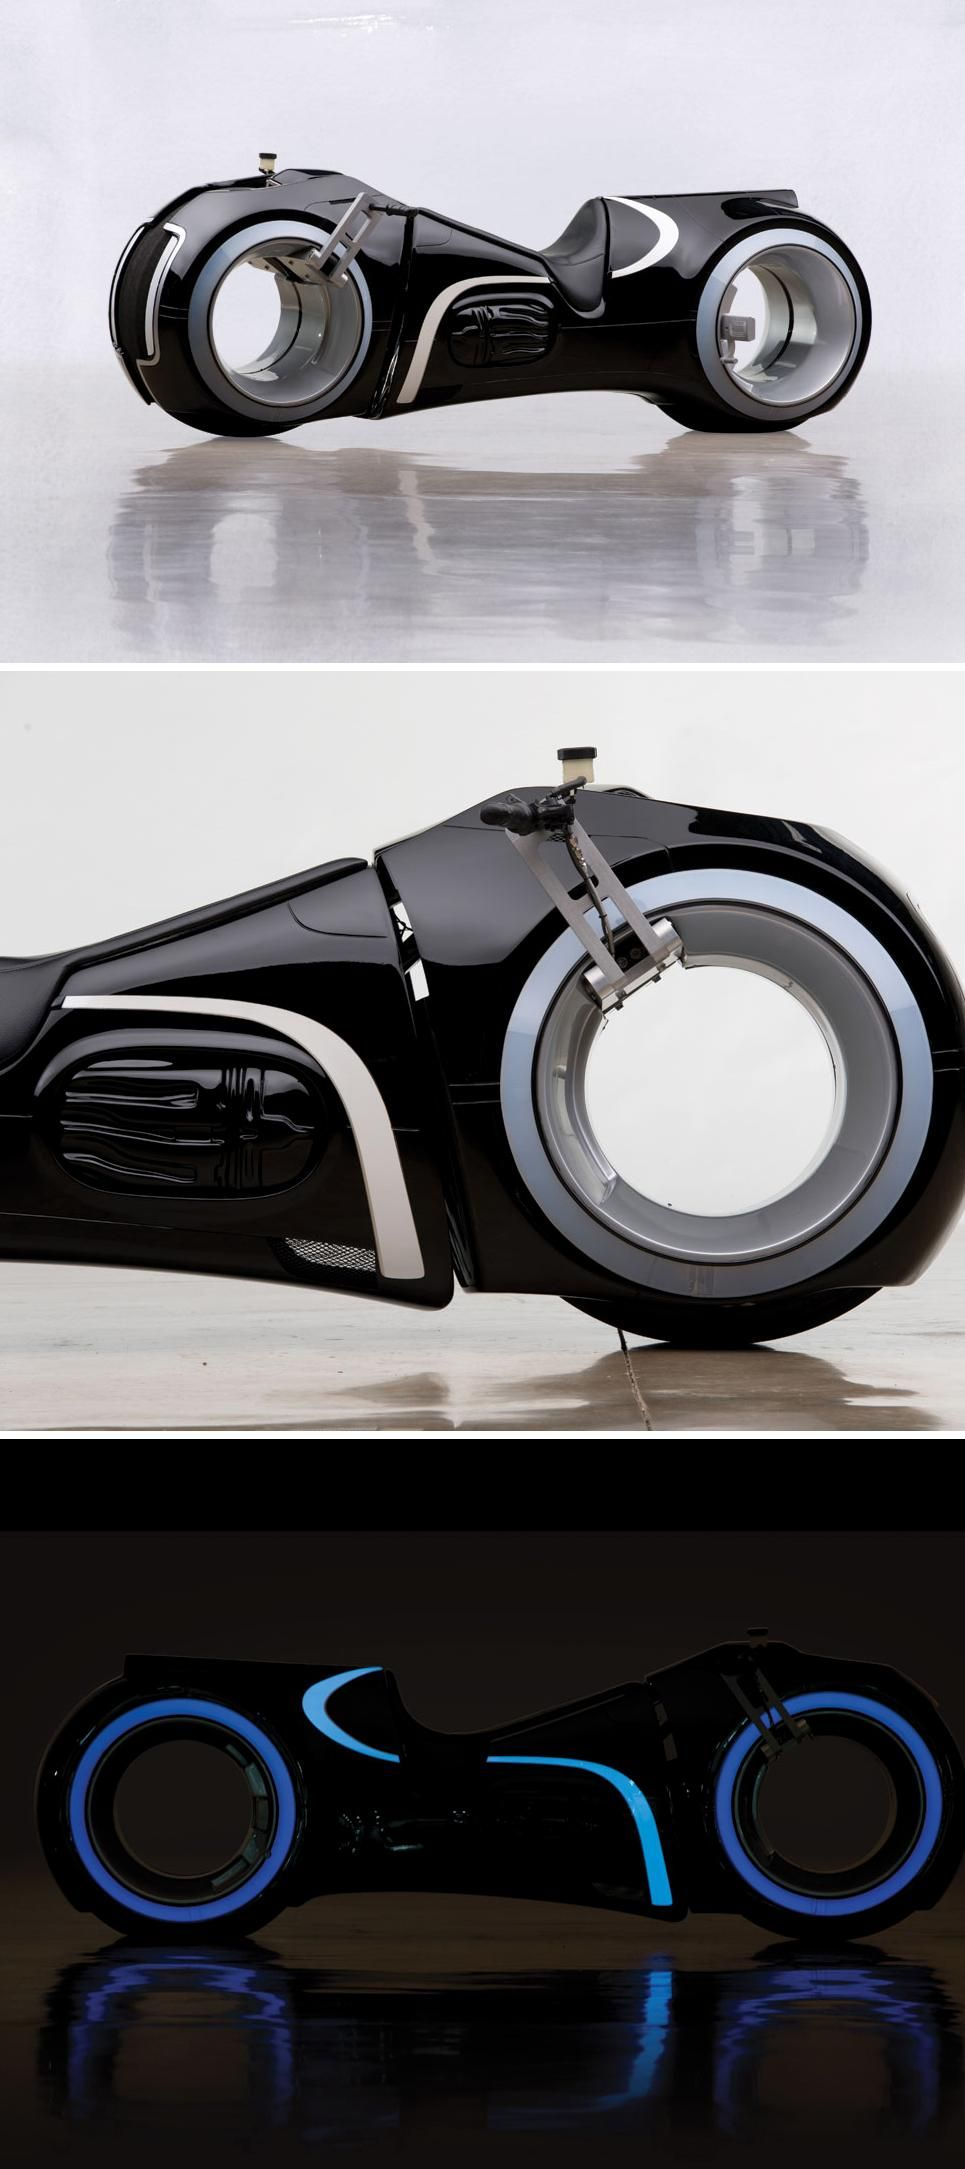 A man in Texas made a working version of the iconic Light Cycle from 2010's Tron reboot